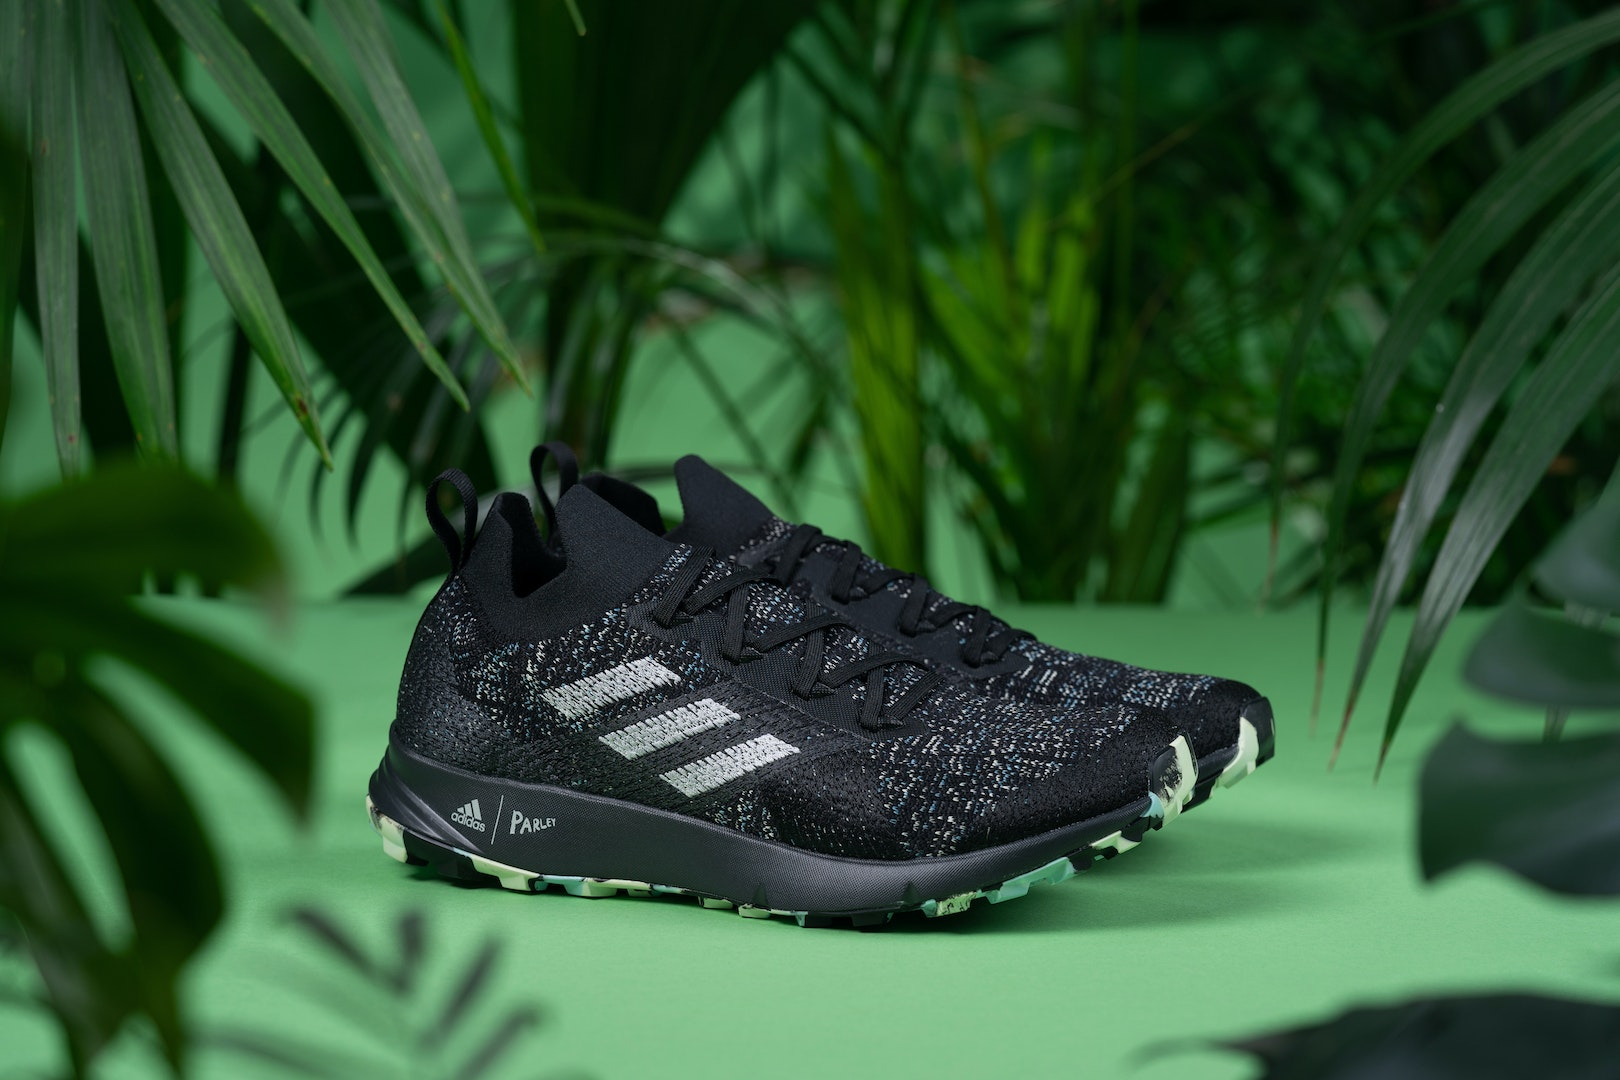 Diploma desconcertado Volverse loco  Adidas Terrex TWO Parley Trail Shoes | Review - Outd...